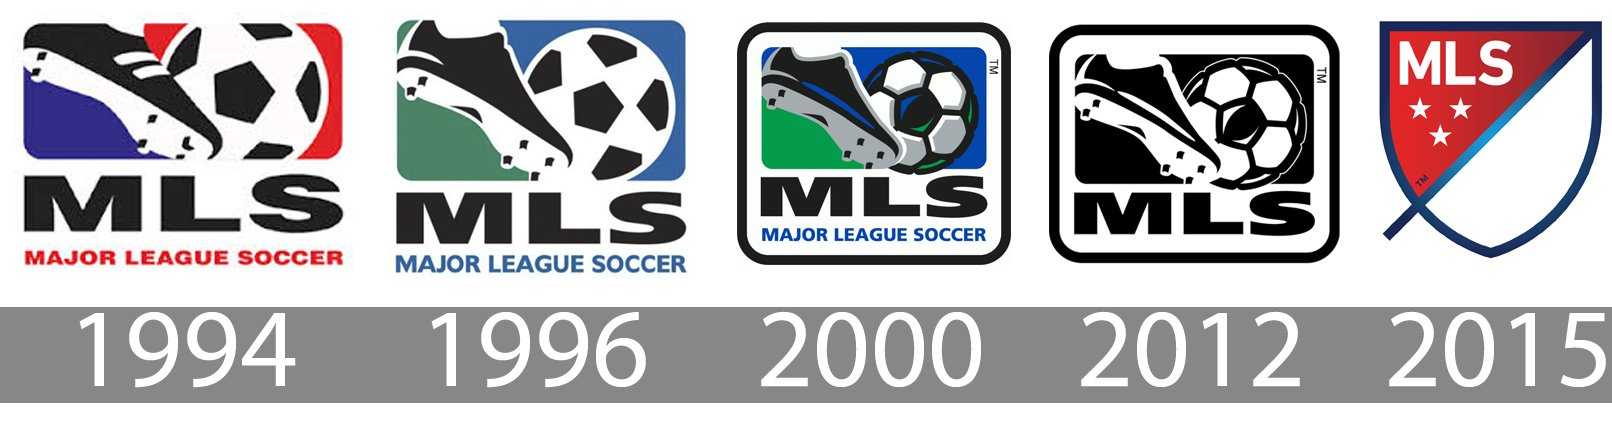 Mls logo mls symbol meaning history and evolution meaning and history mls logo sciox Choice Image